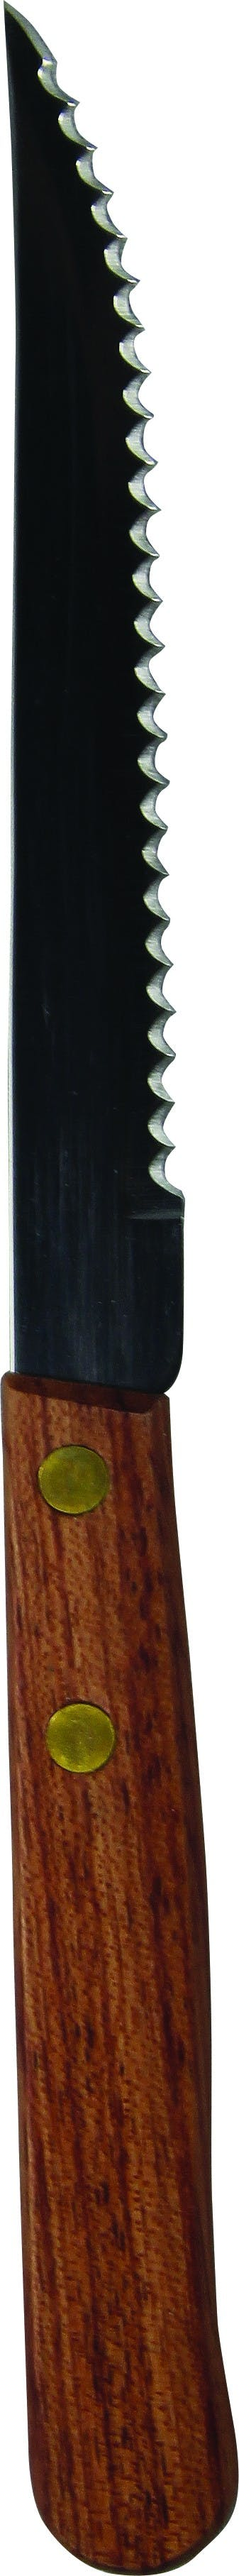 """8.5"""" Pointed Tip Steak Knife with Rosewood Handle Flatware sold by Prestige Glassware"""